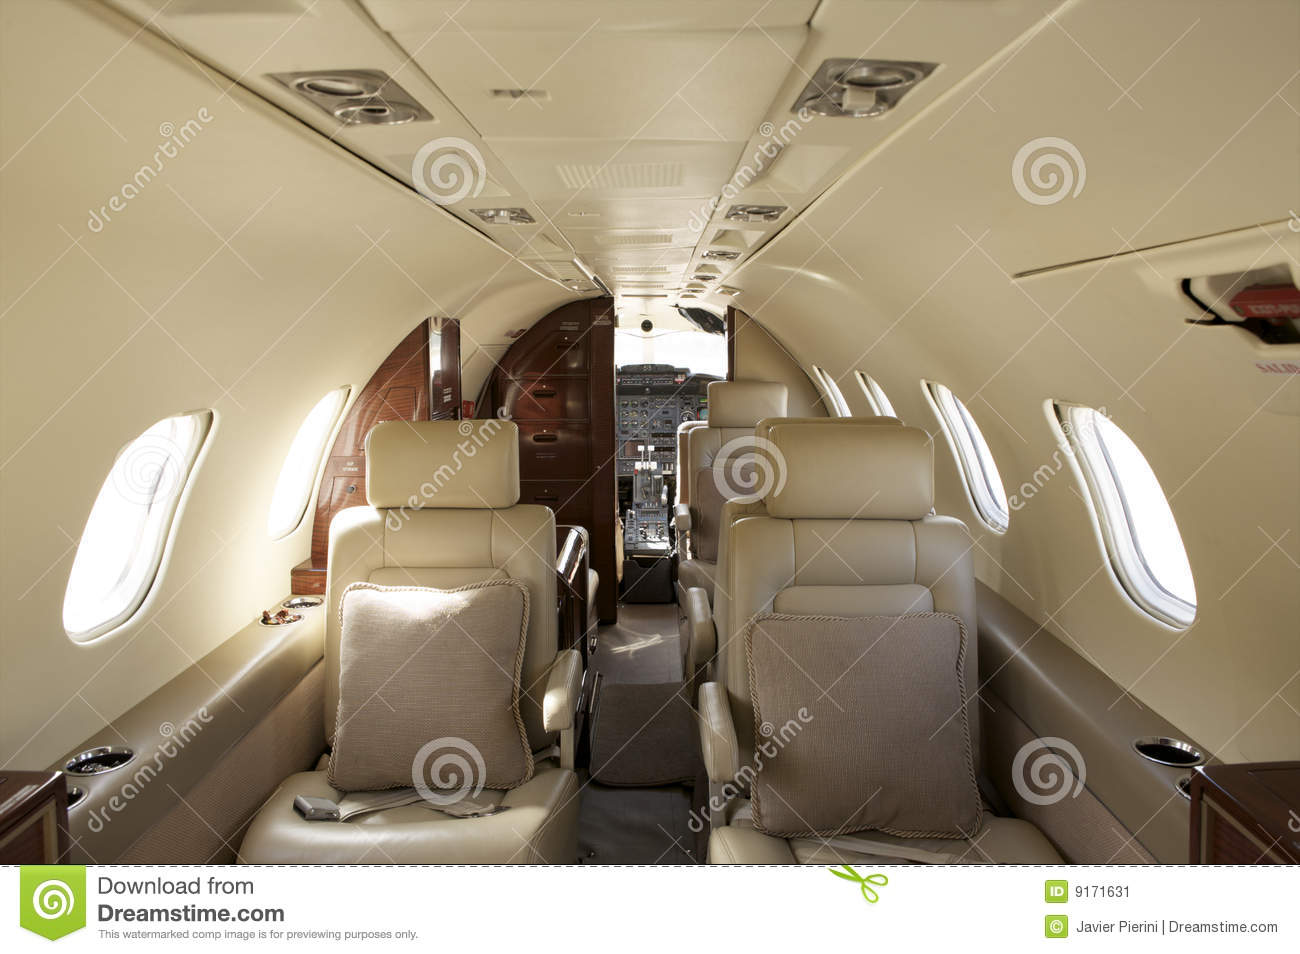 Avion r action int rieur priv image stock image 9171631 for Interieur avion